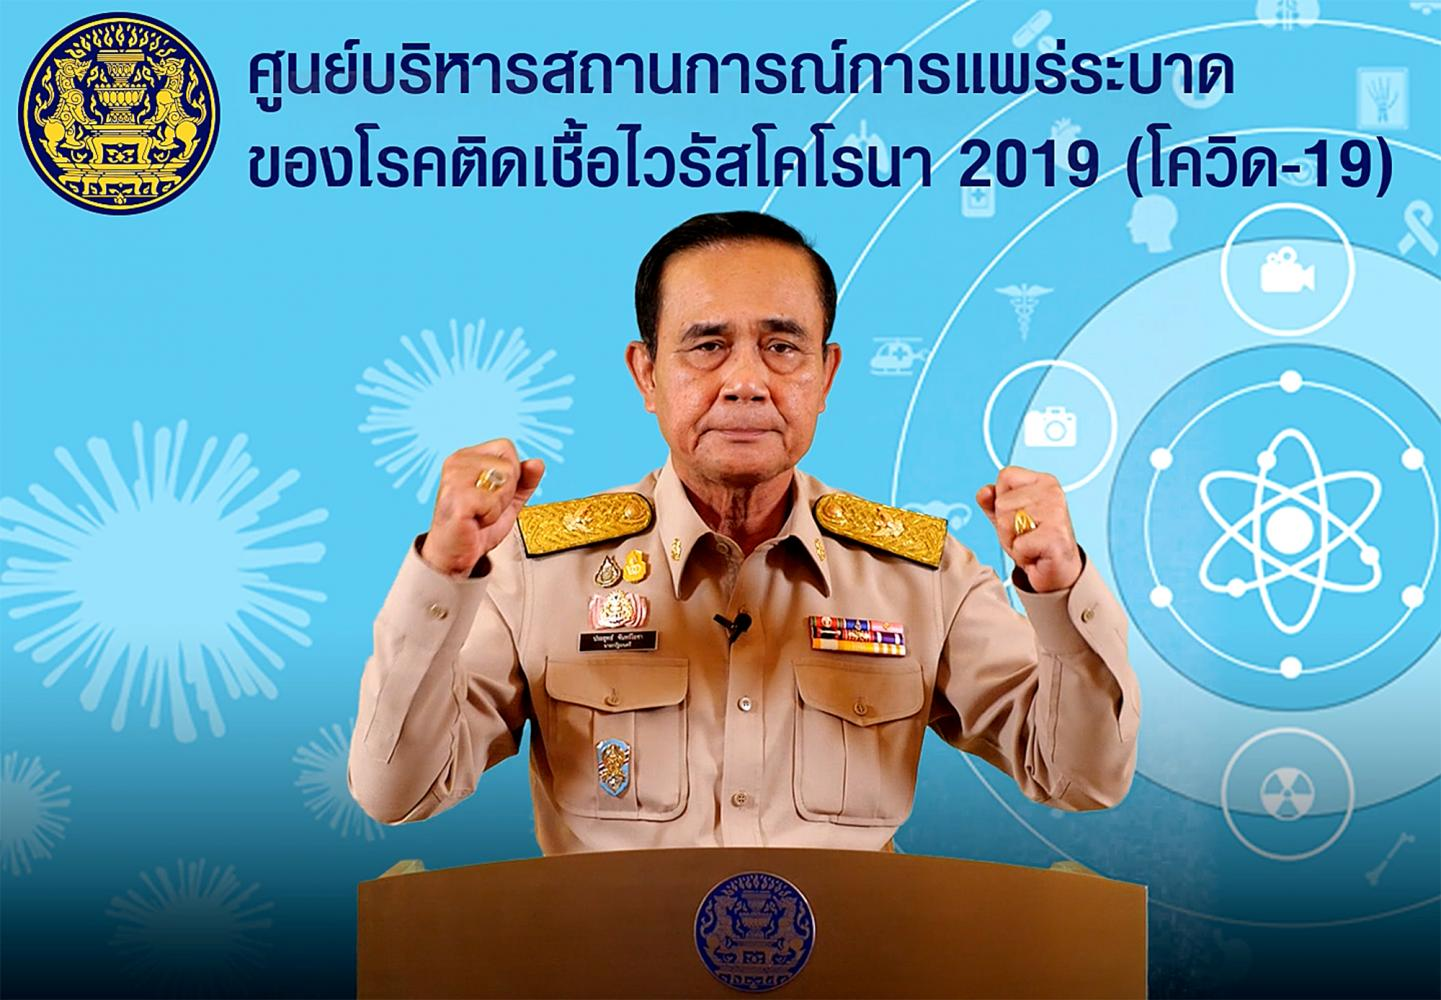 Prime Minister Prayut Chan-o-cha makes a gesture after giving a national address on the Covid-19 situation.(Government House photo)